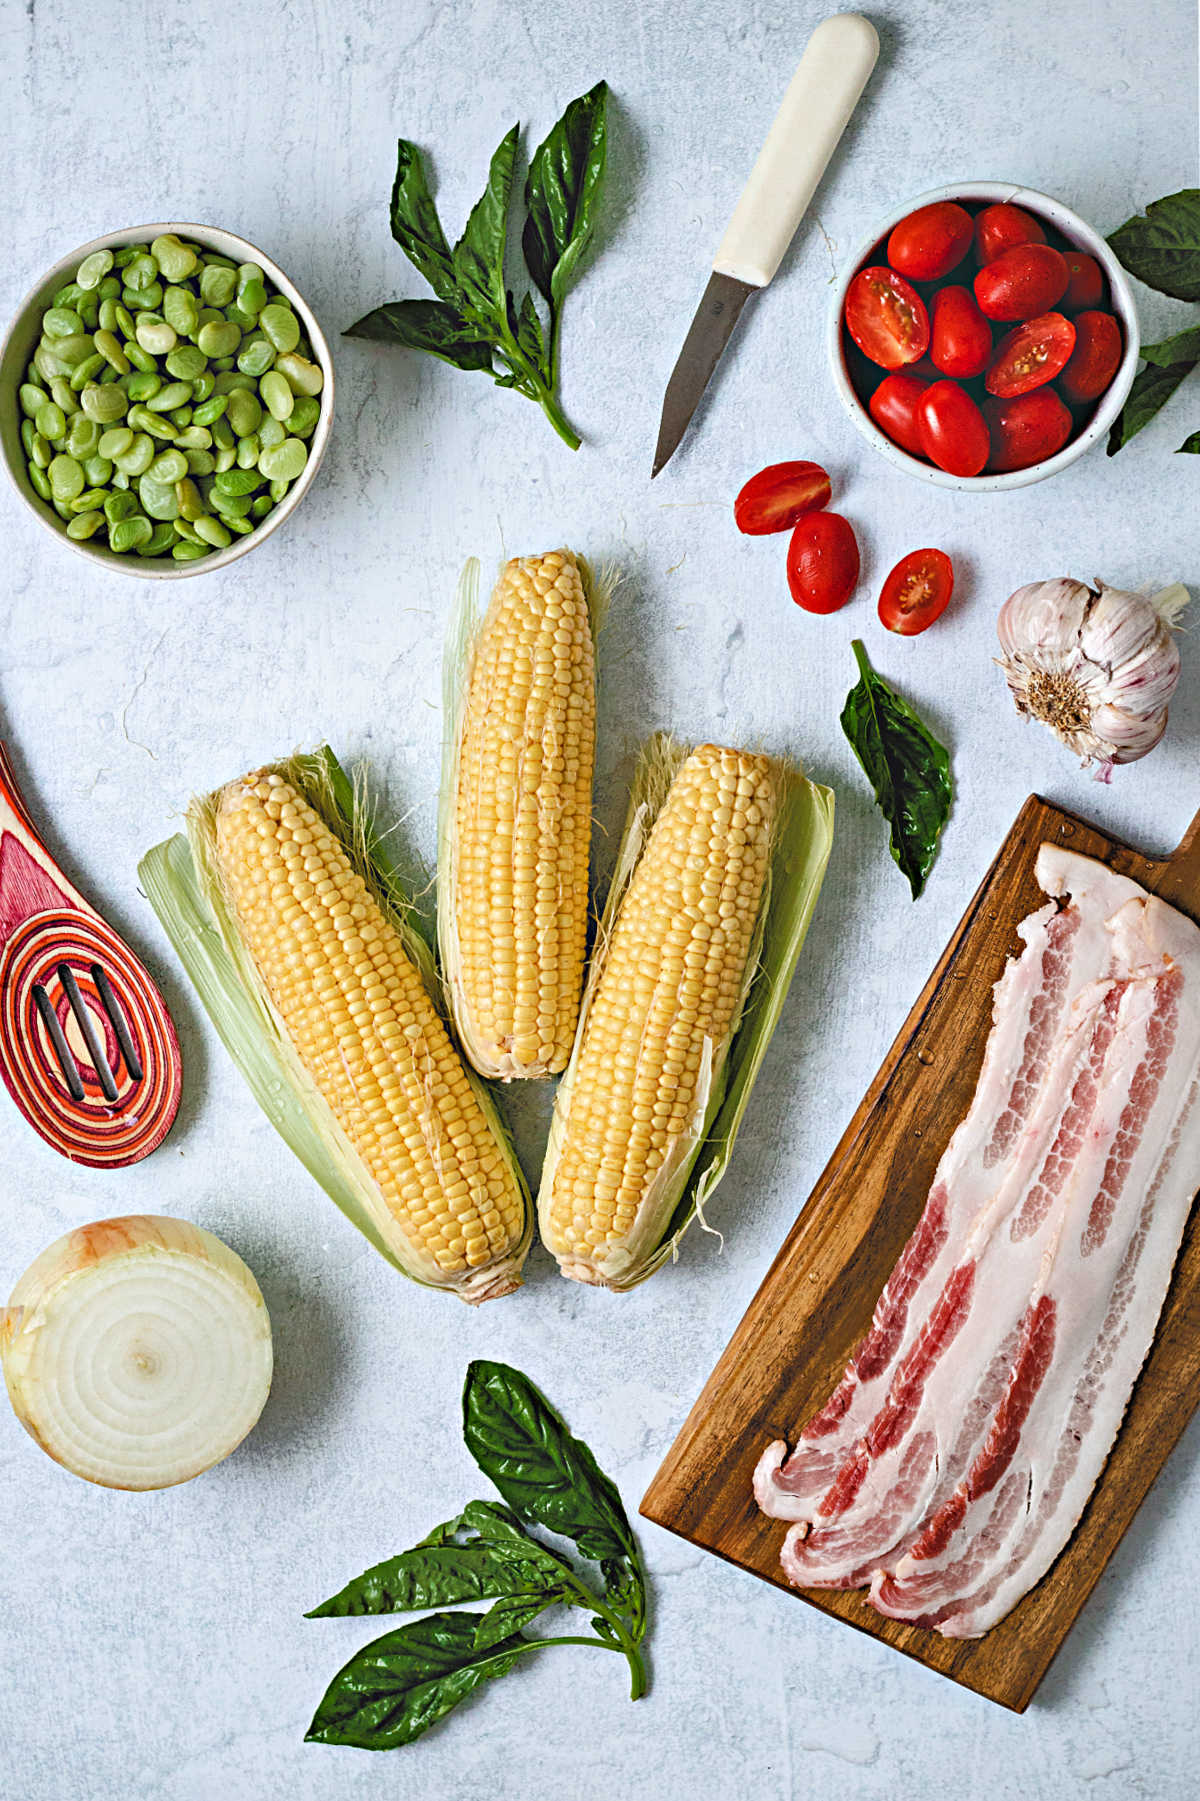 ingredients for corn succotash on a table: 3 ears of corn, fresh basil, a bowl of lima beans, grape tomatoes, onion, garlic, and bacon slices.